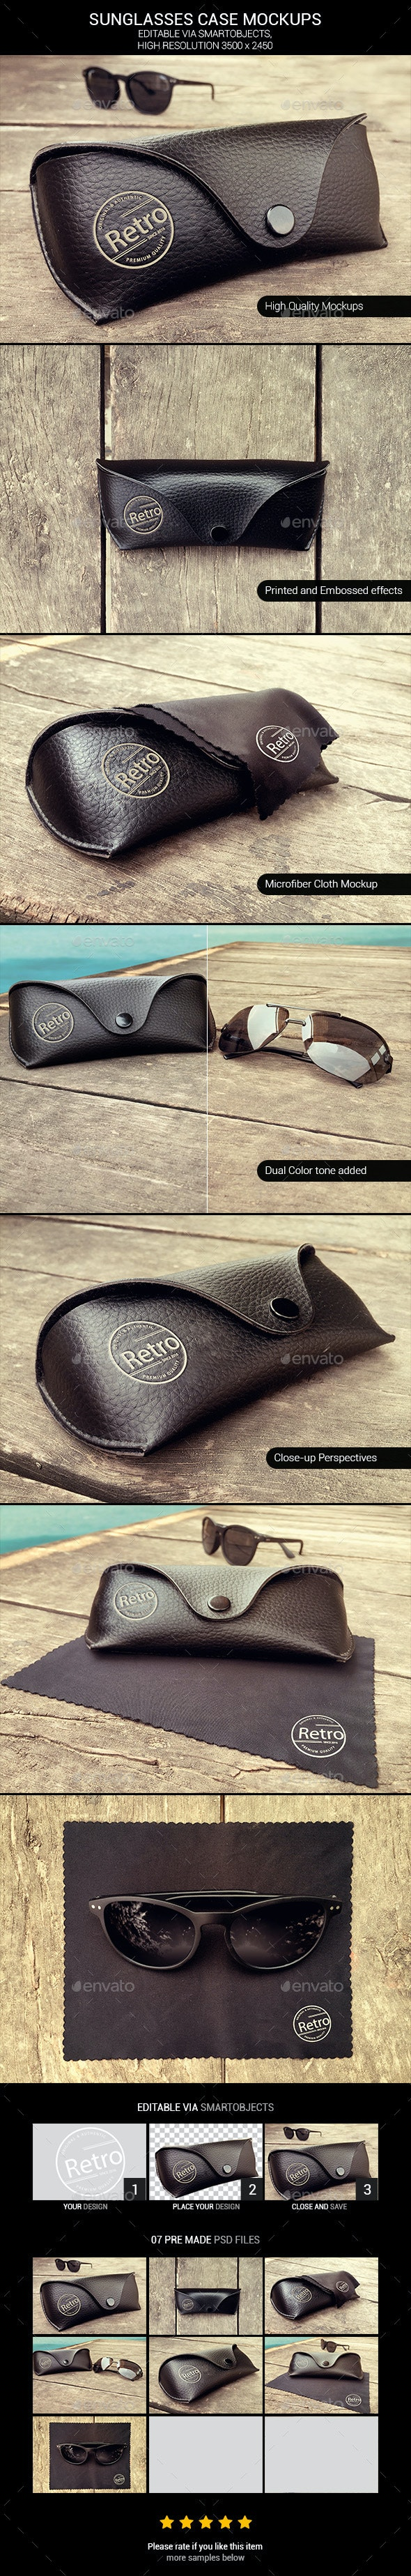 Sunglasses Case Mockups - Beauty Packaging